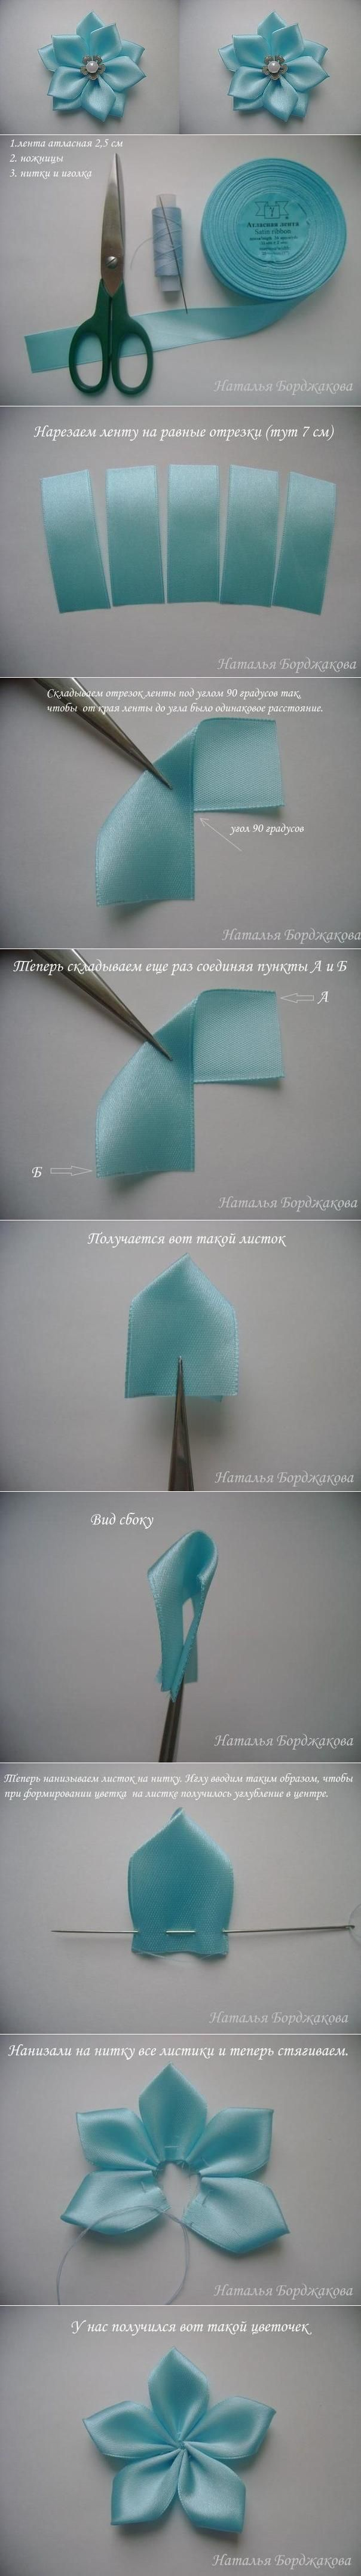 DIY Pointed Petals Ribbon Flower can not understand but I can figer it out